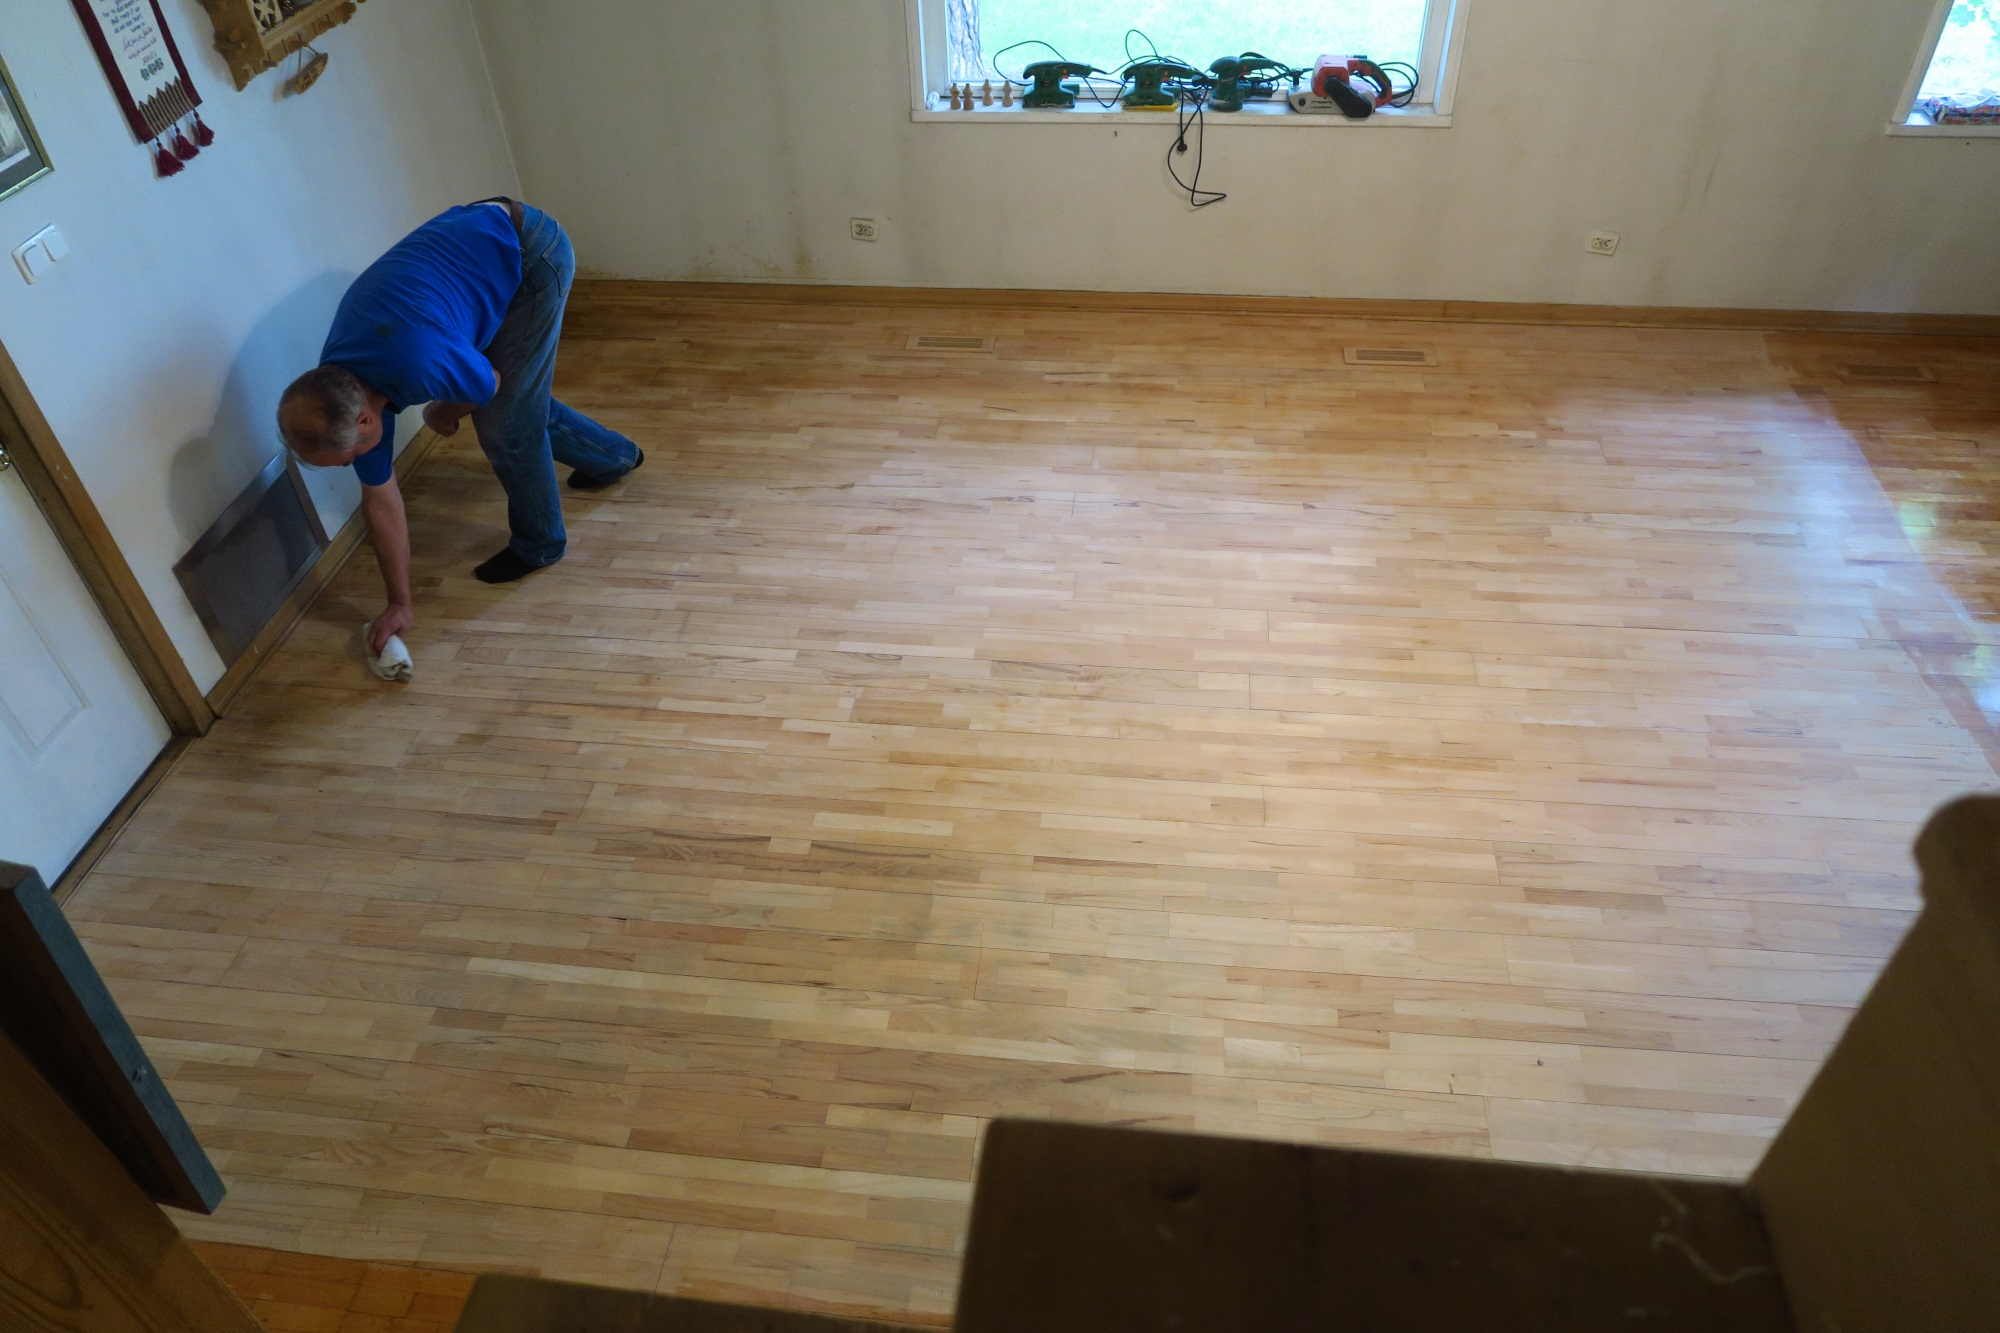 My husband is wiping down the floor before he varnishes the first time. He had sanded extensively - had the shop vac connected to the sander, so most of the sawdust was collected as he went along.